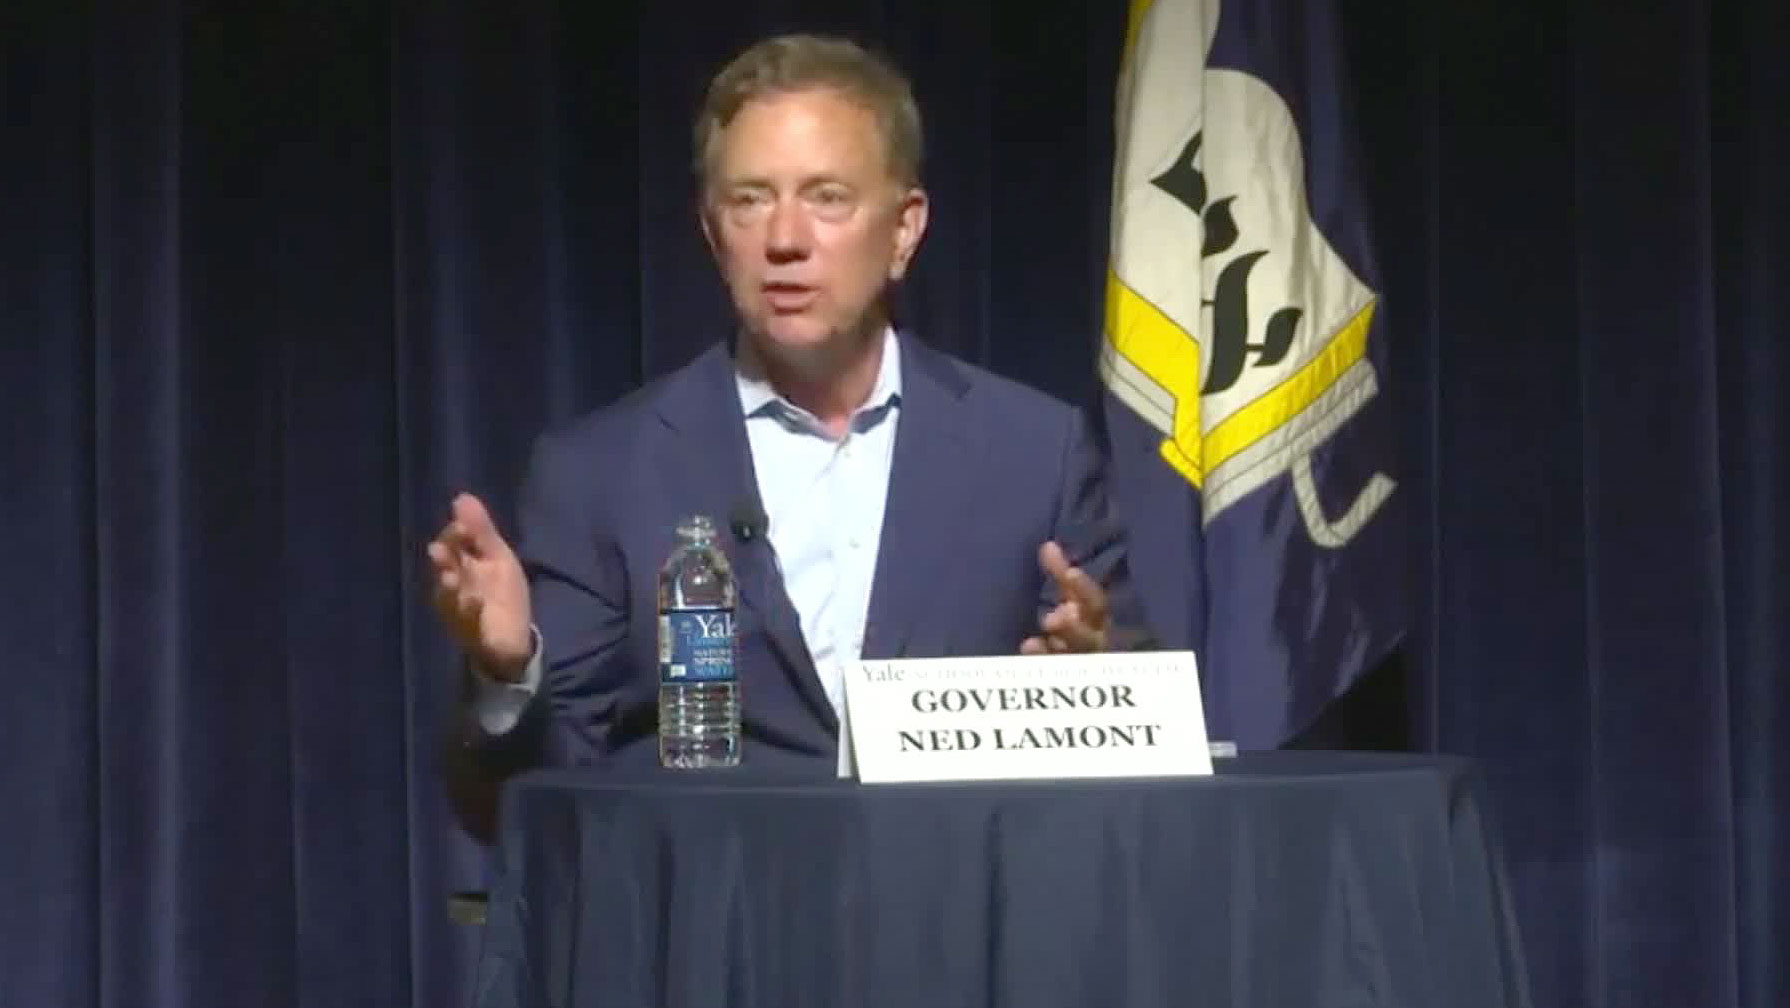 Connecticut Gov. Ned Lamont participates in a panel discussion Tuesday at the Yale School of Public Health.